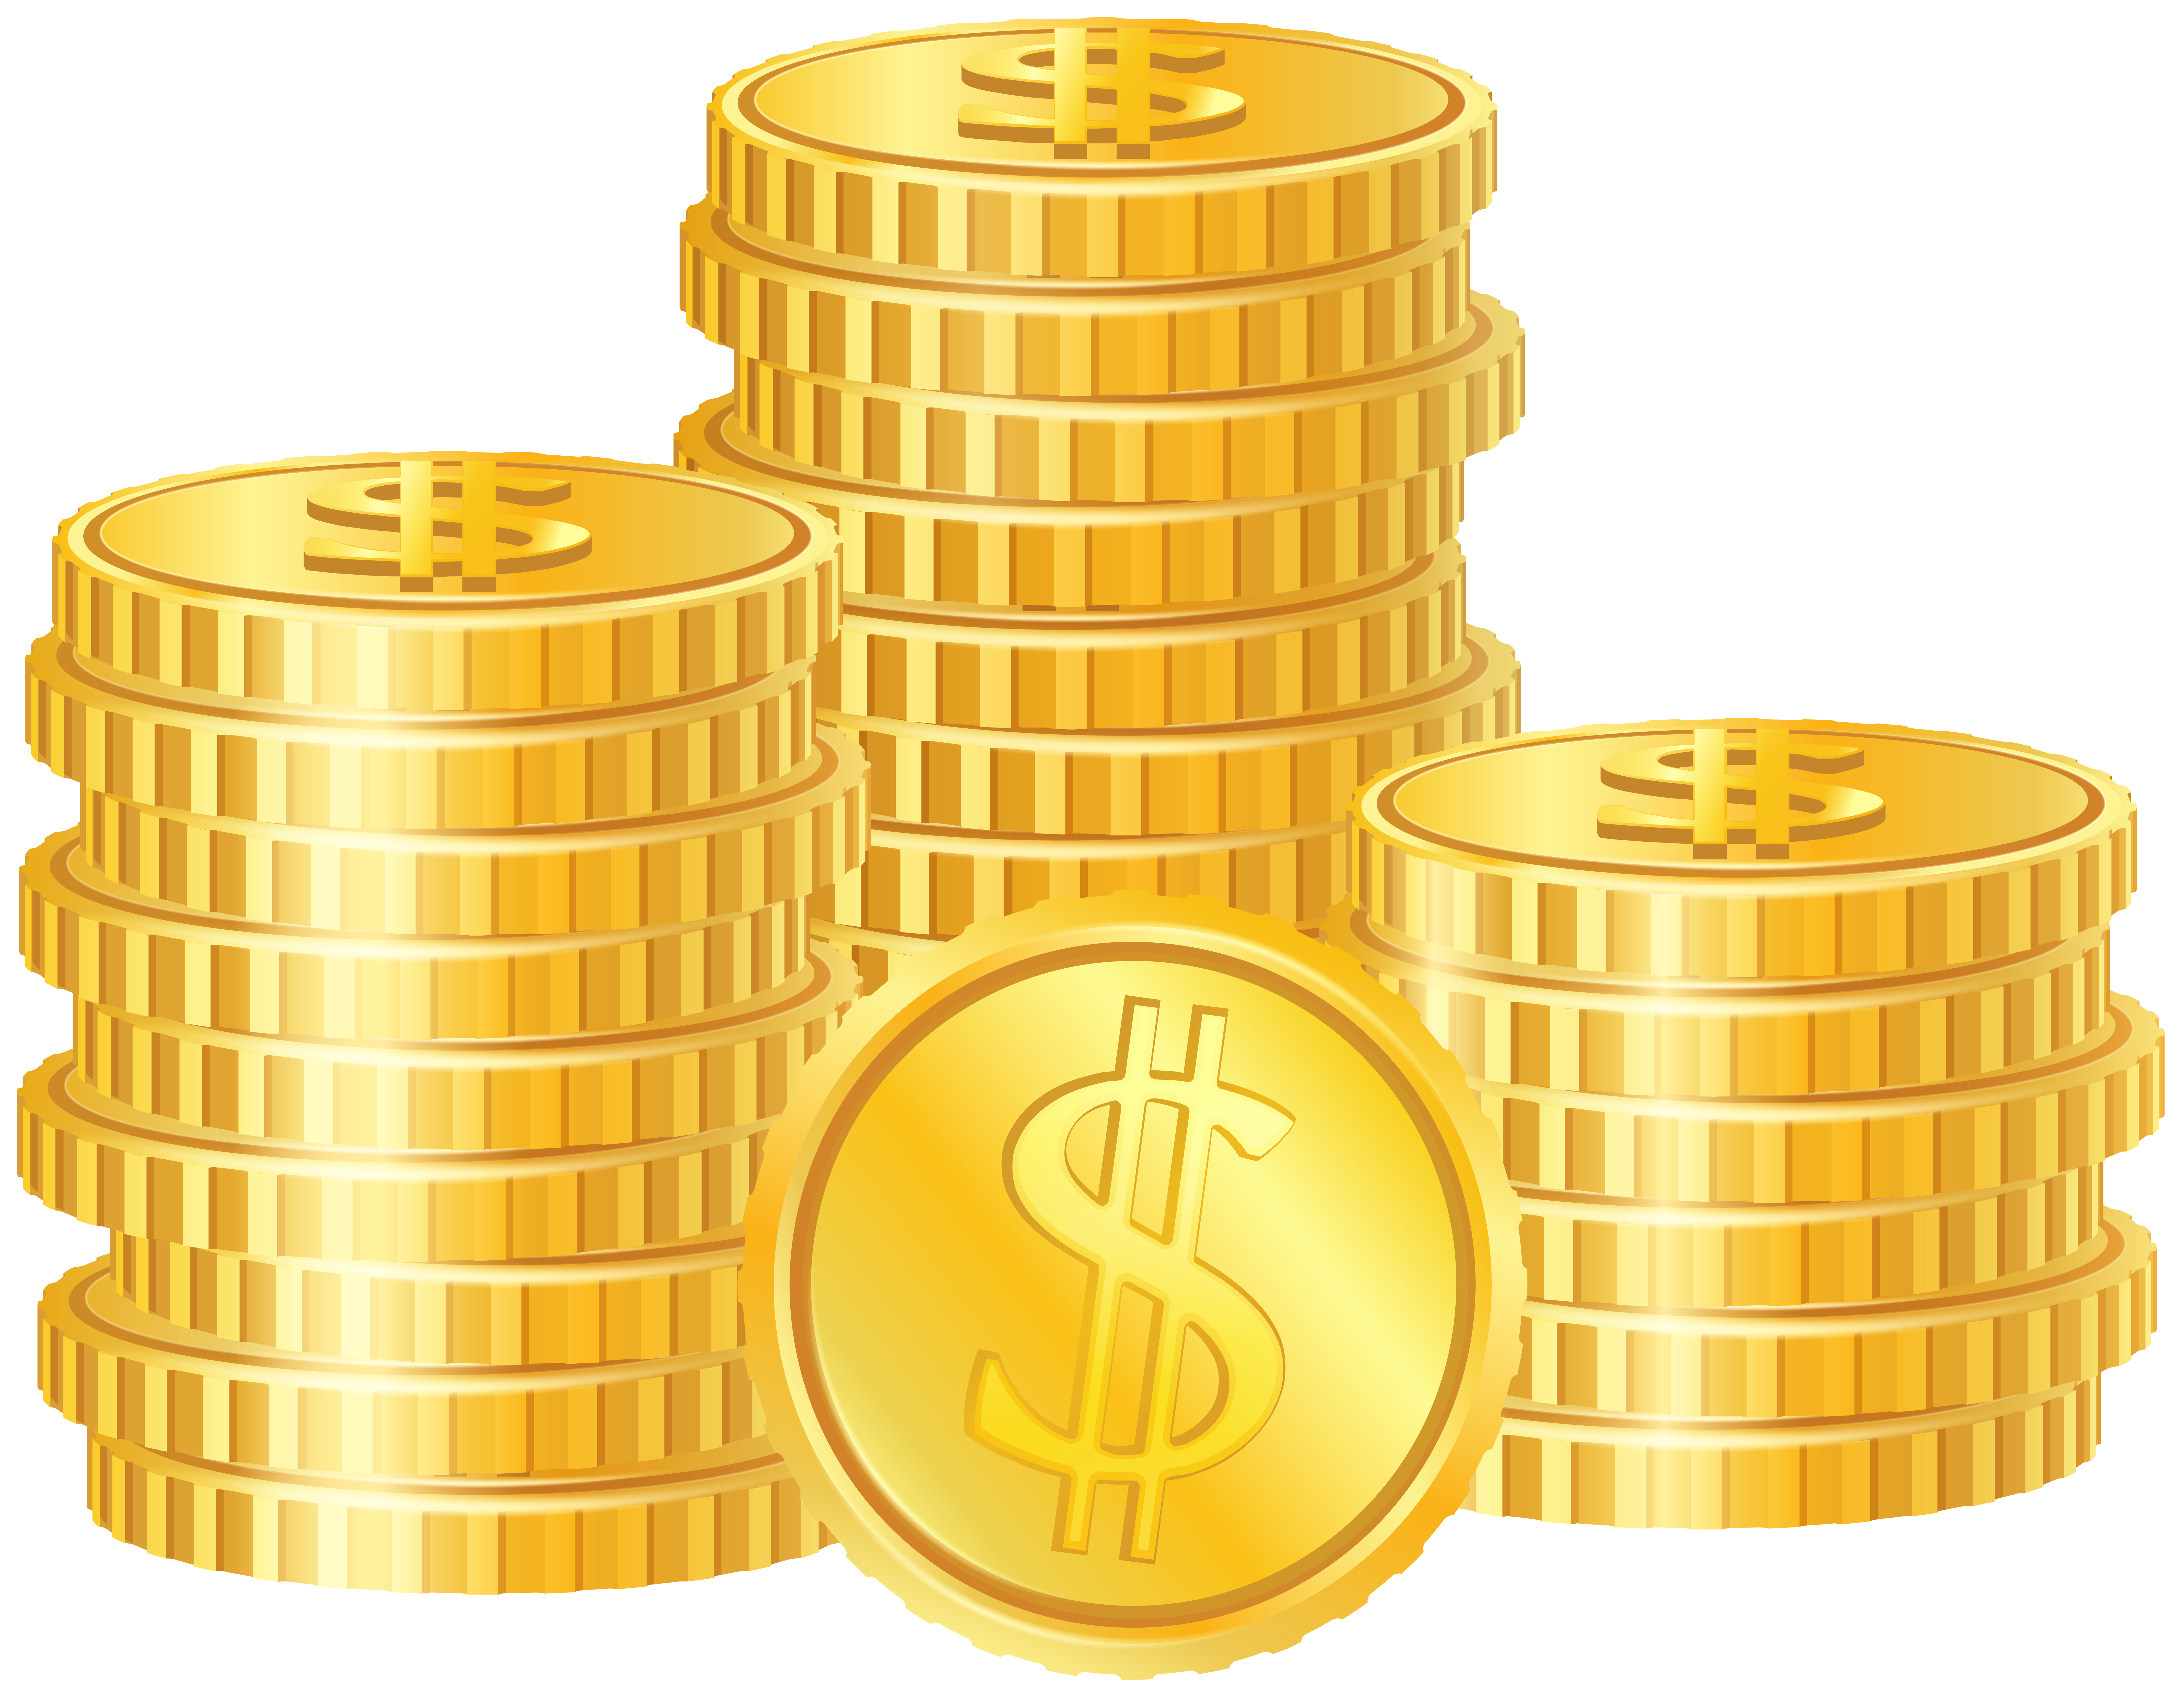 Golden Coins PNG Clipart Image.